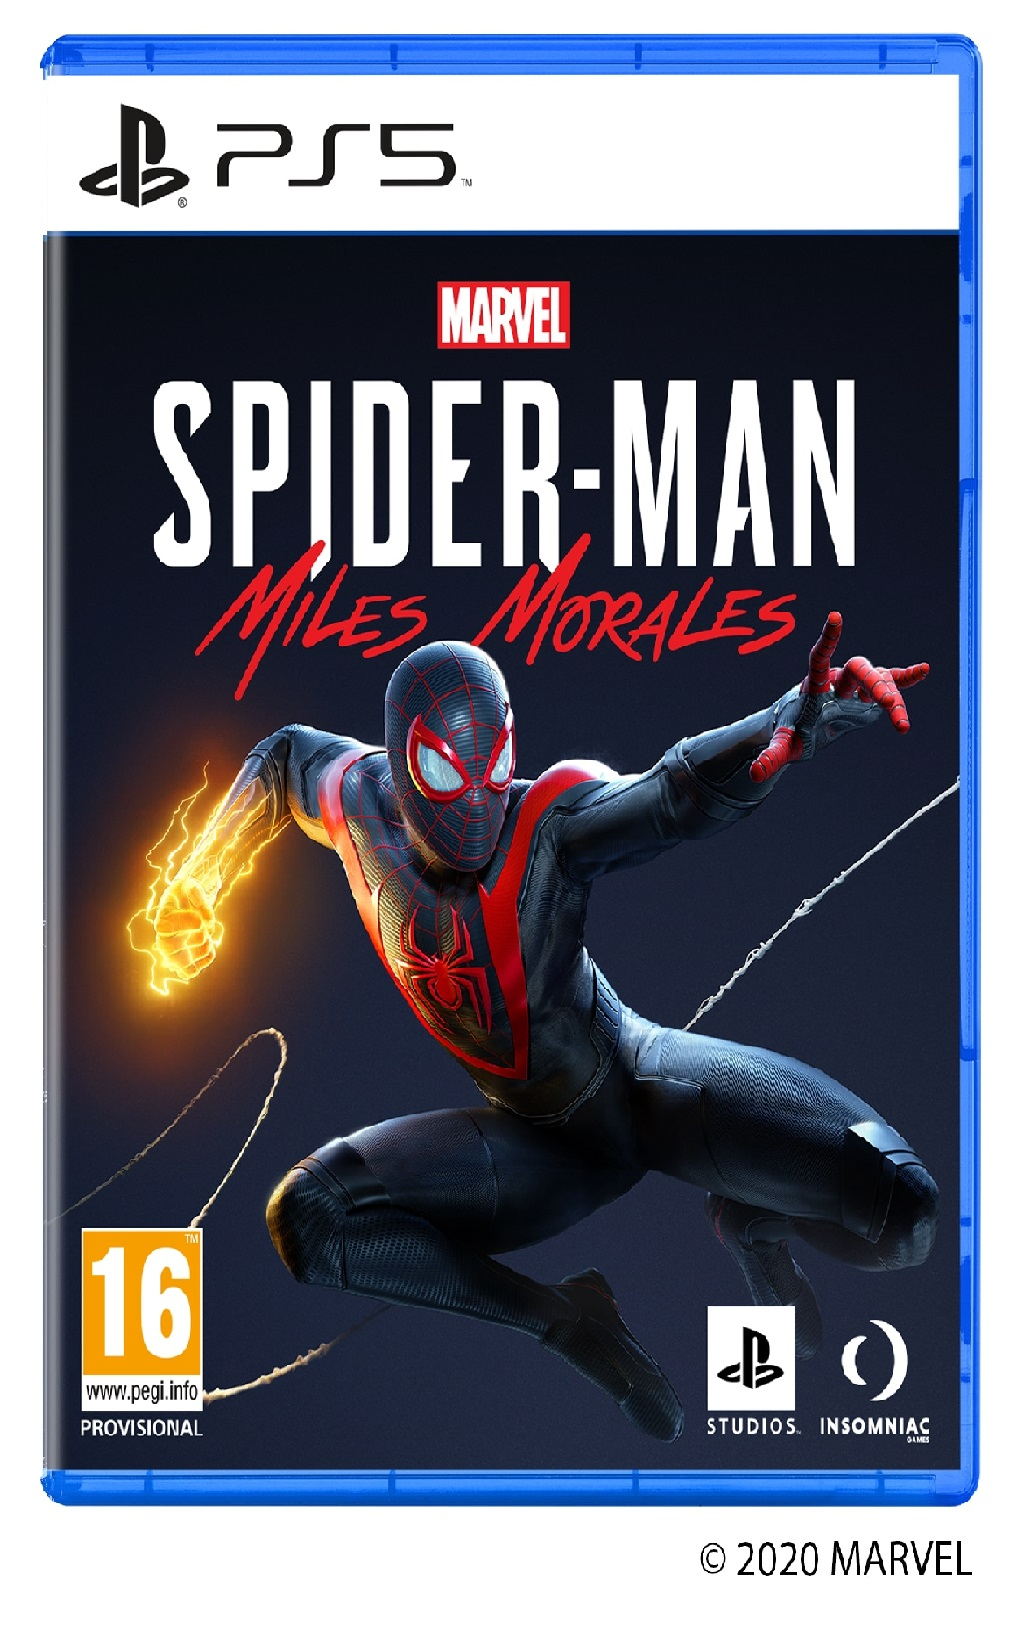 PS5 - Marvel's Spider-Man MMorales - PS719835820